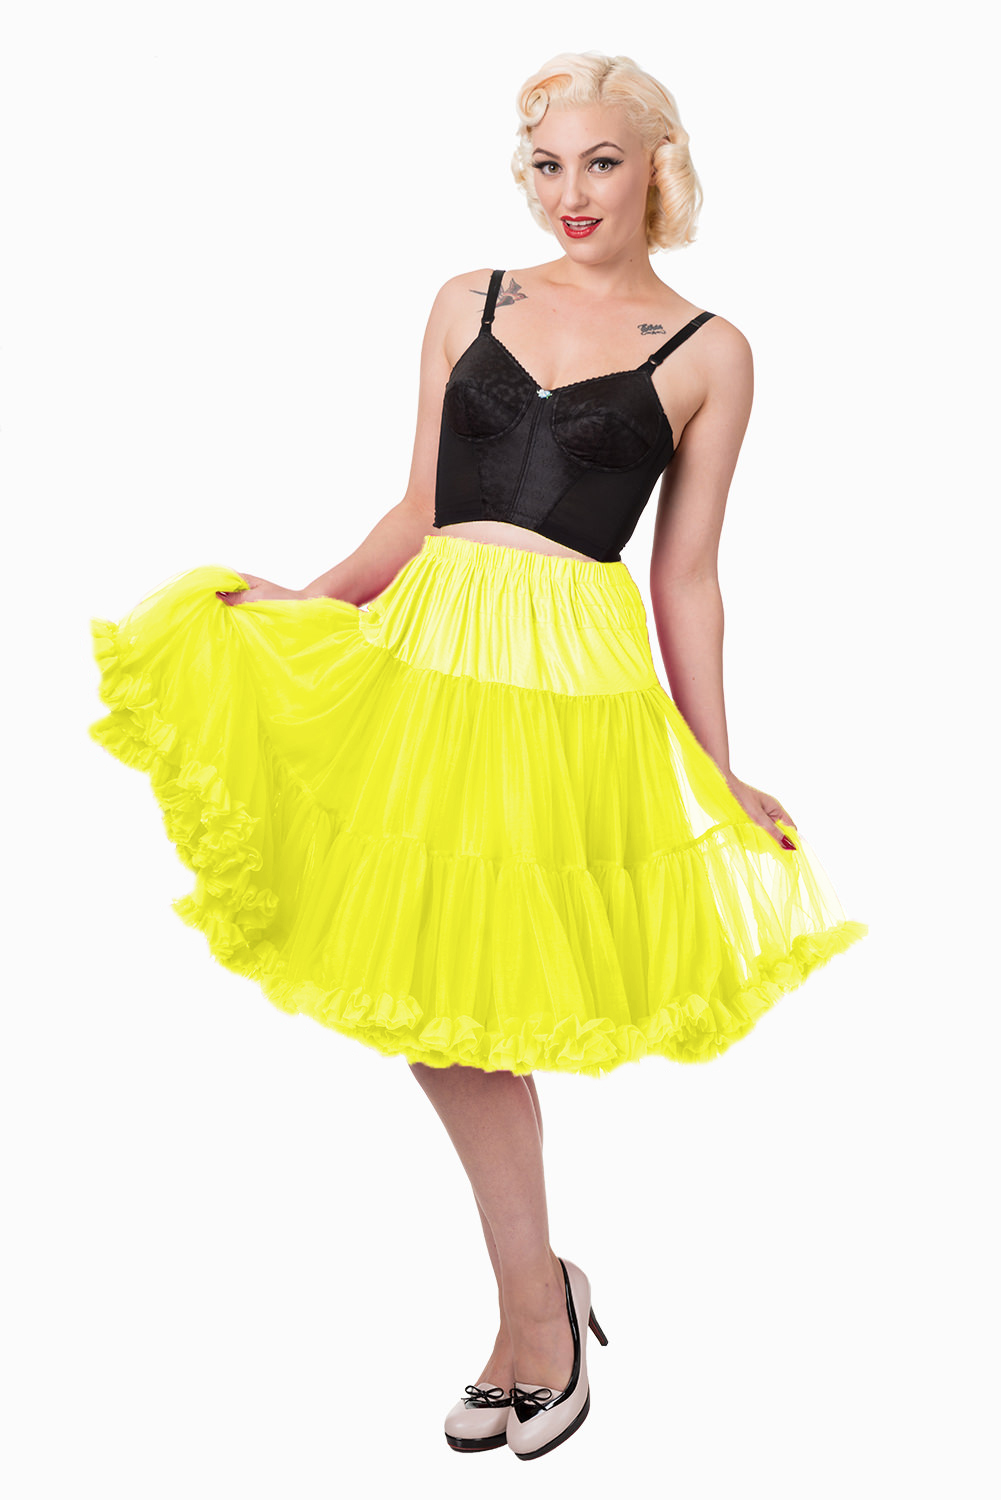 Banned Yellow Lifeforms Petticoat